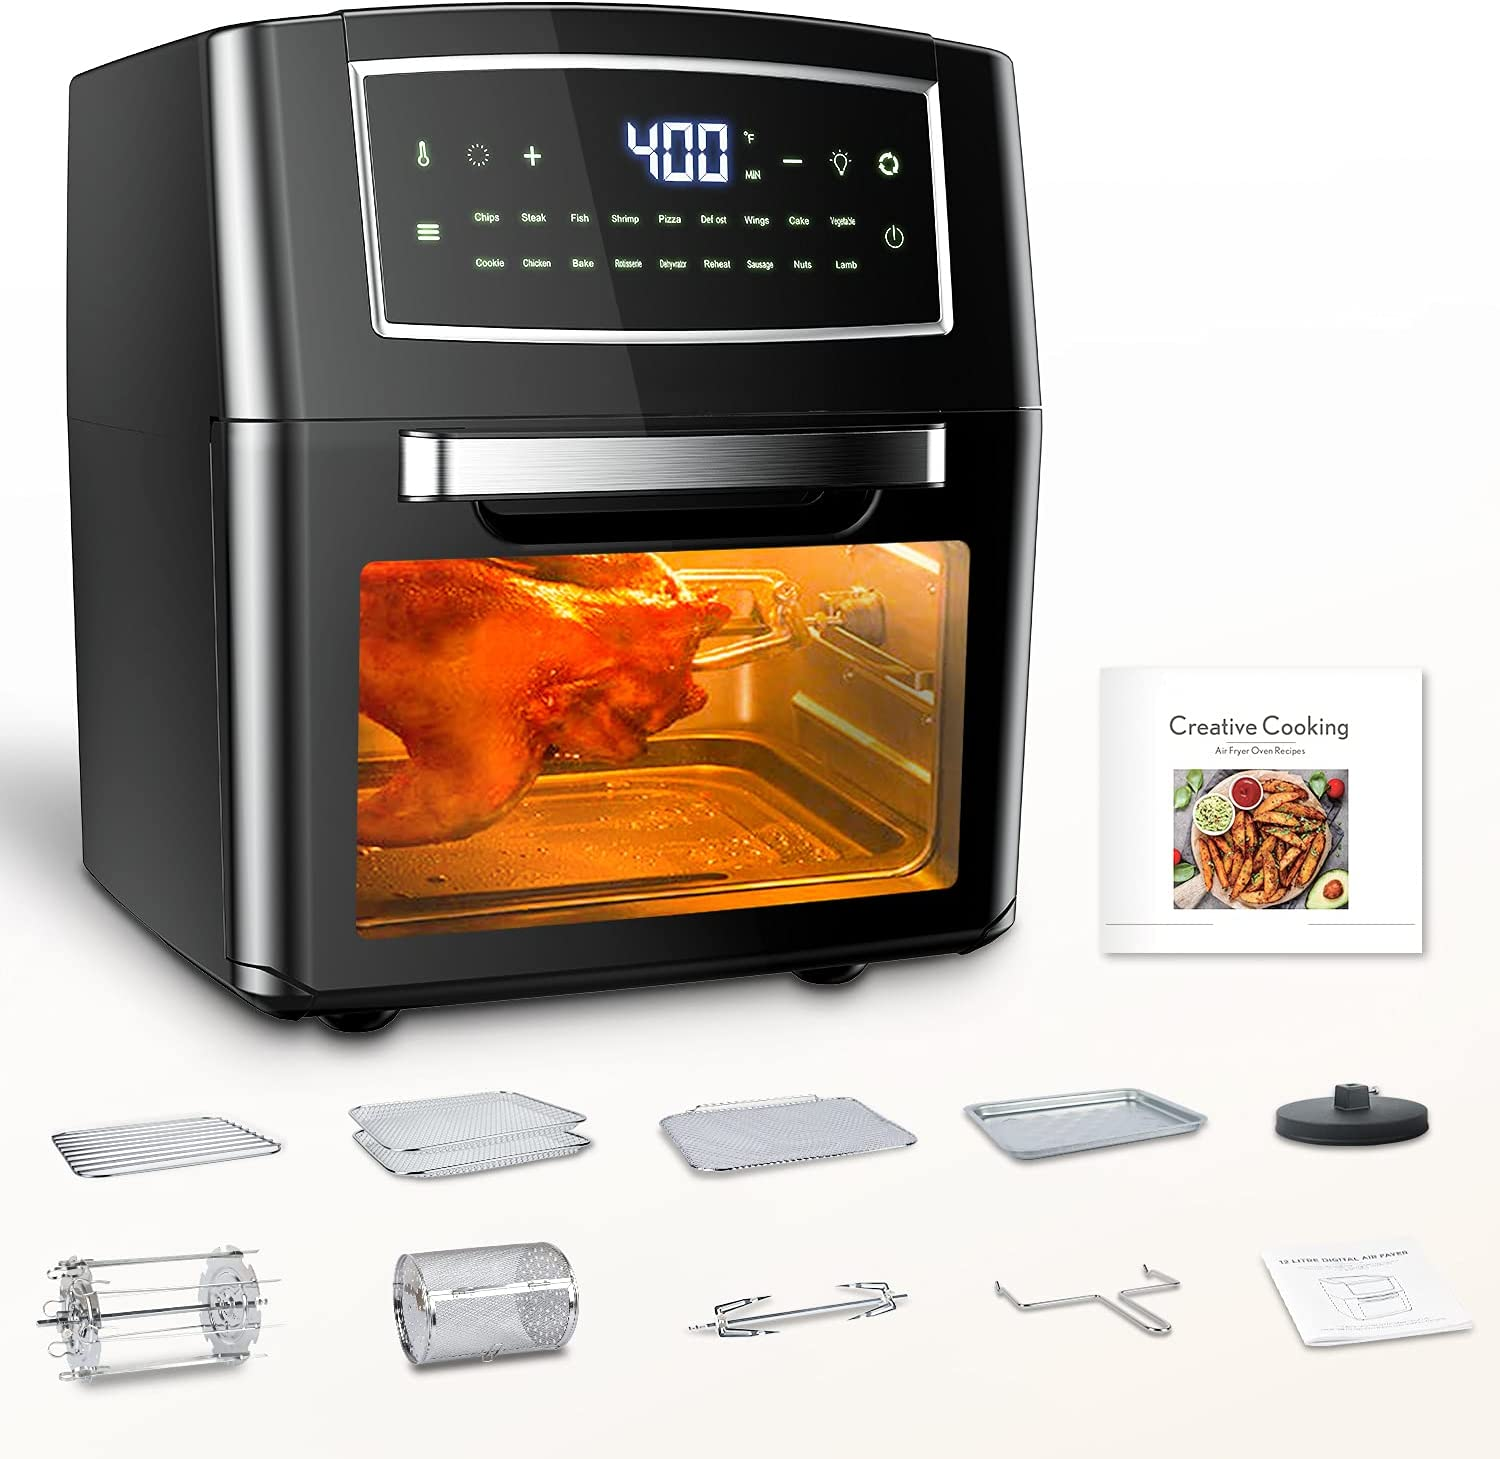 12.7QT Air Fryer Oven, 18 in 1 Toaster Convection Oven, BPA-free Toaster Oven for Grill, Roast, Fry, Pizza, Reheat, Food Dehydrator, 1500W AirFryer with 10 Accessories and Recipe